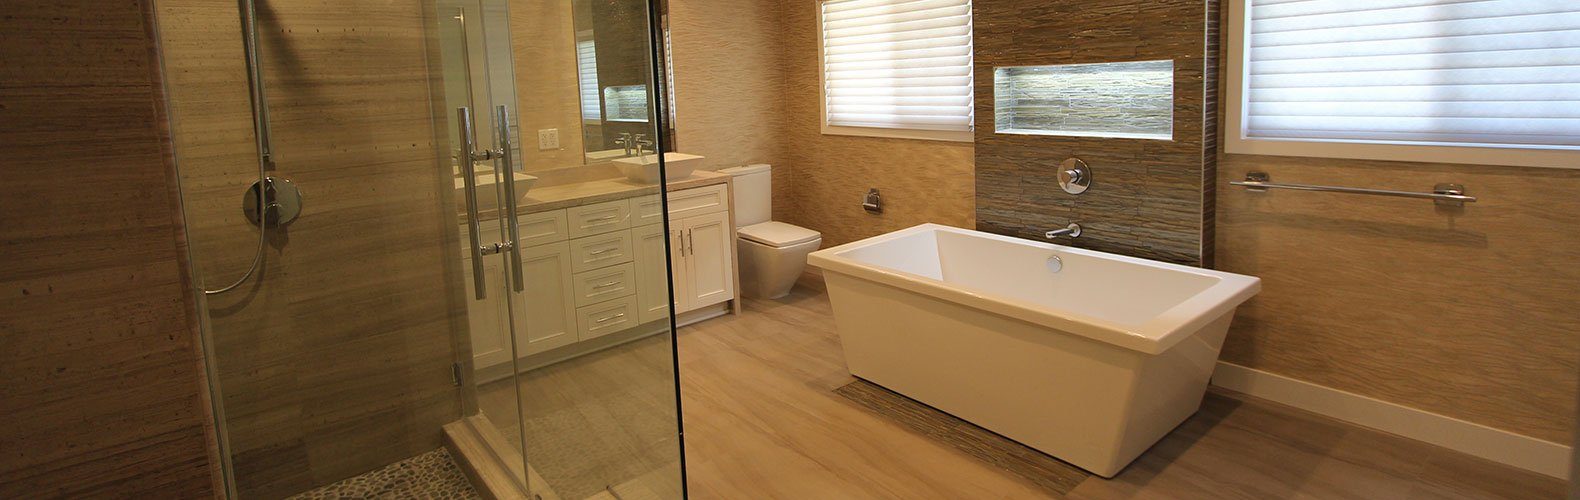 Bathroom Remodeling In Los Angeles CA